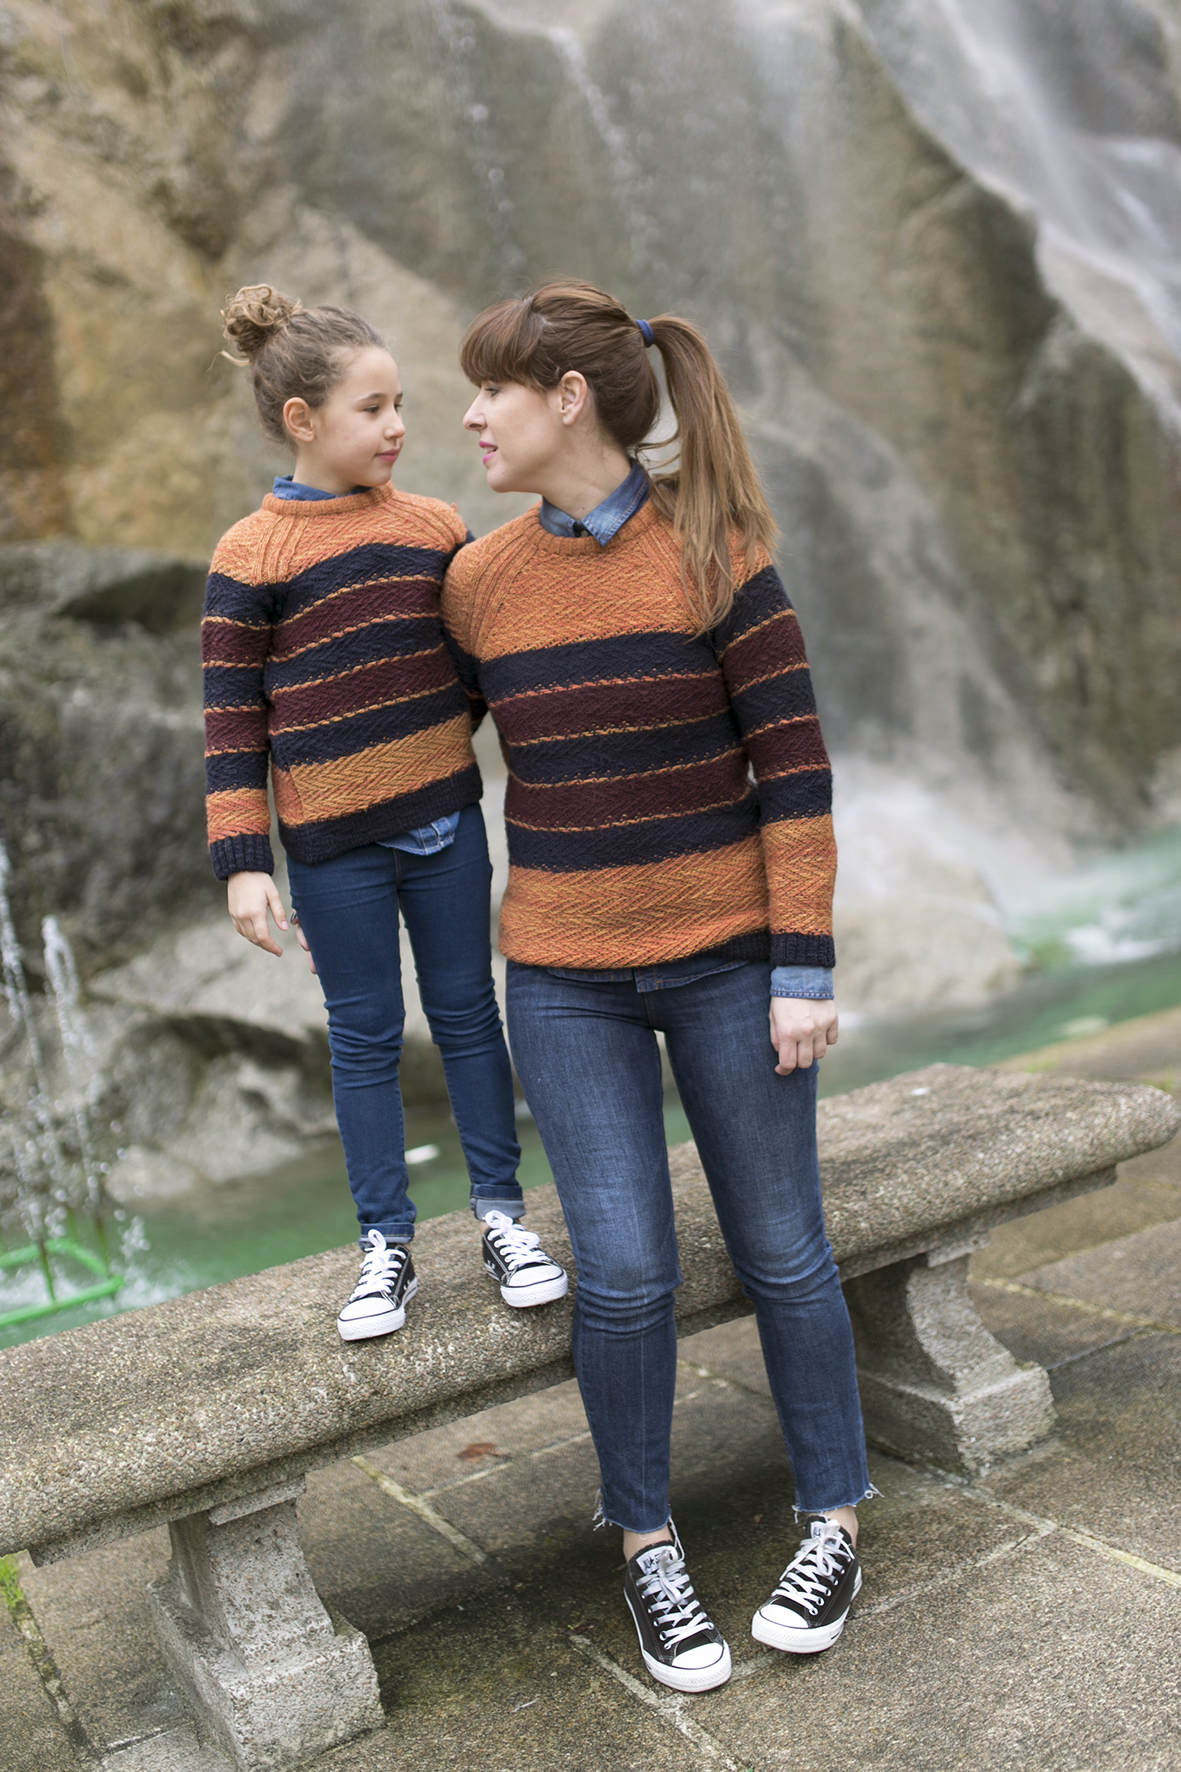 mom and daughter-kids-fashion-denim-minime- streetstyle-descalzaporelparque-converse